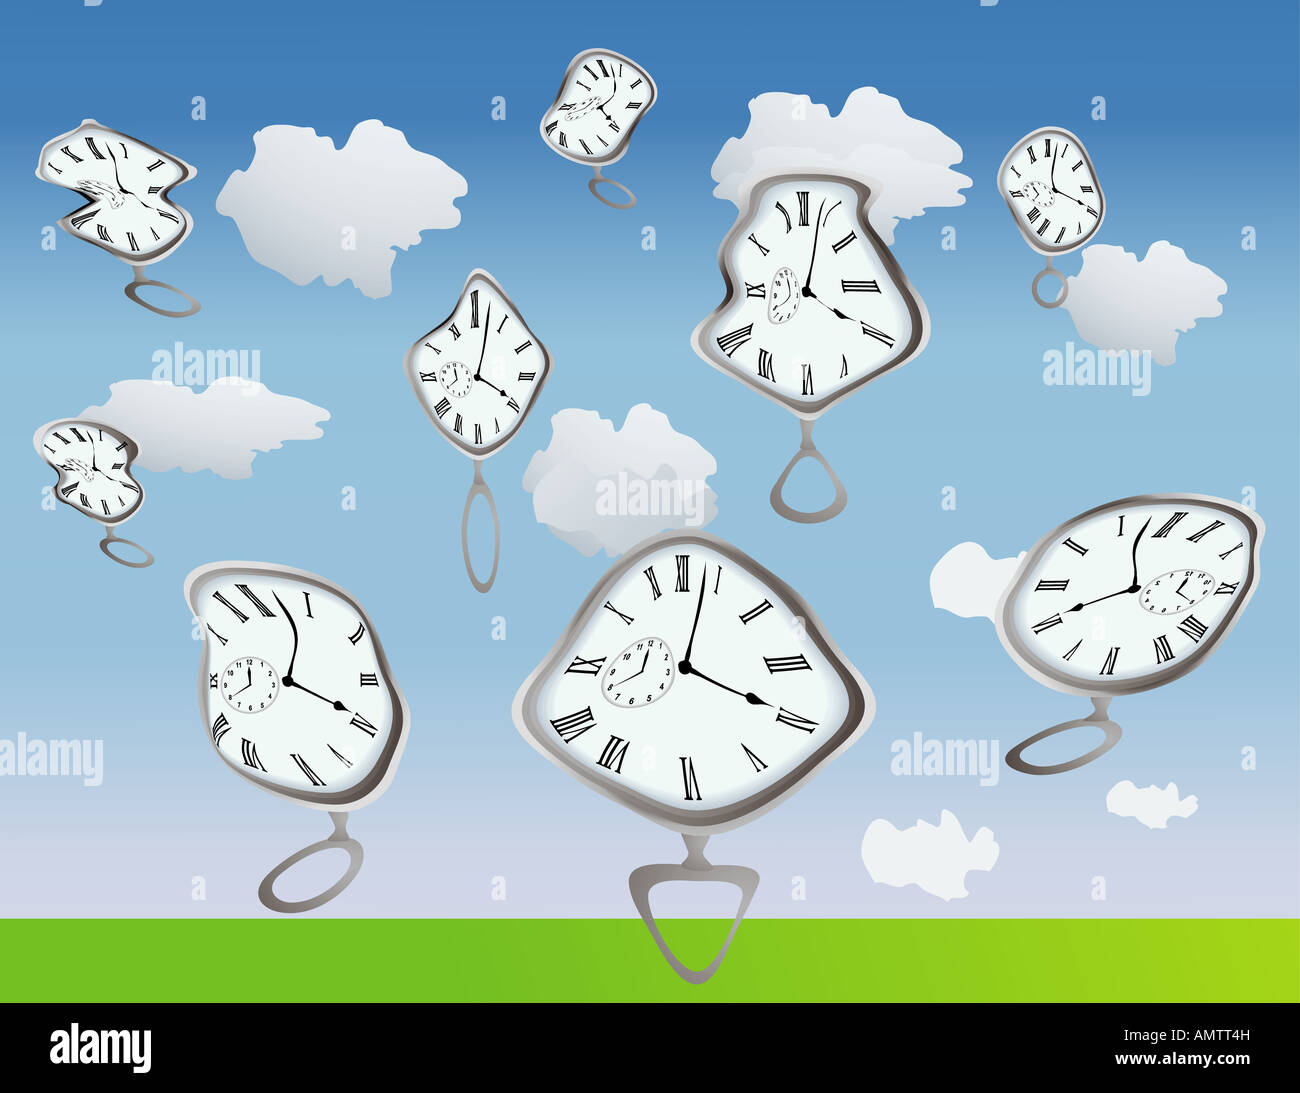 Clockes getting warped by well they are just warped use your imagination - Stock Image